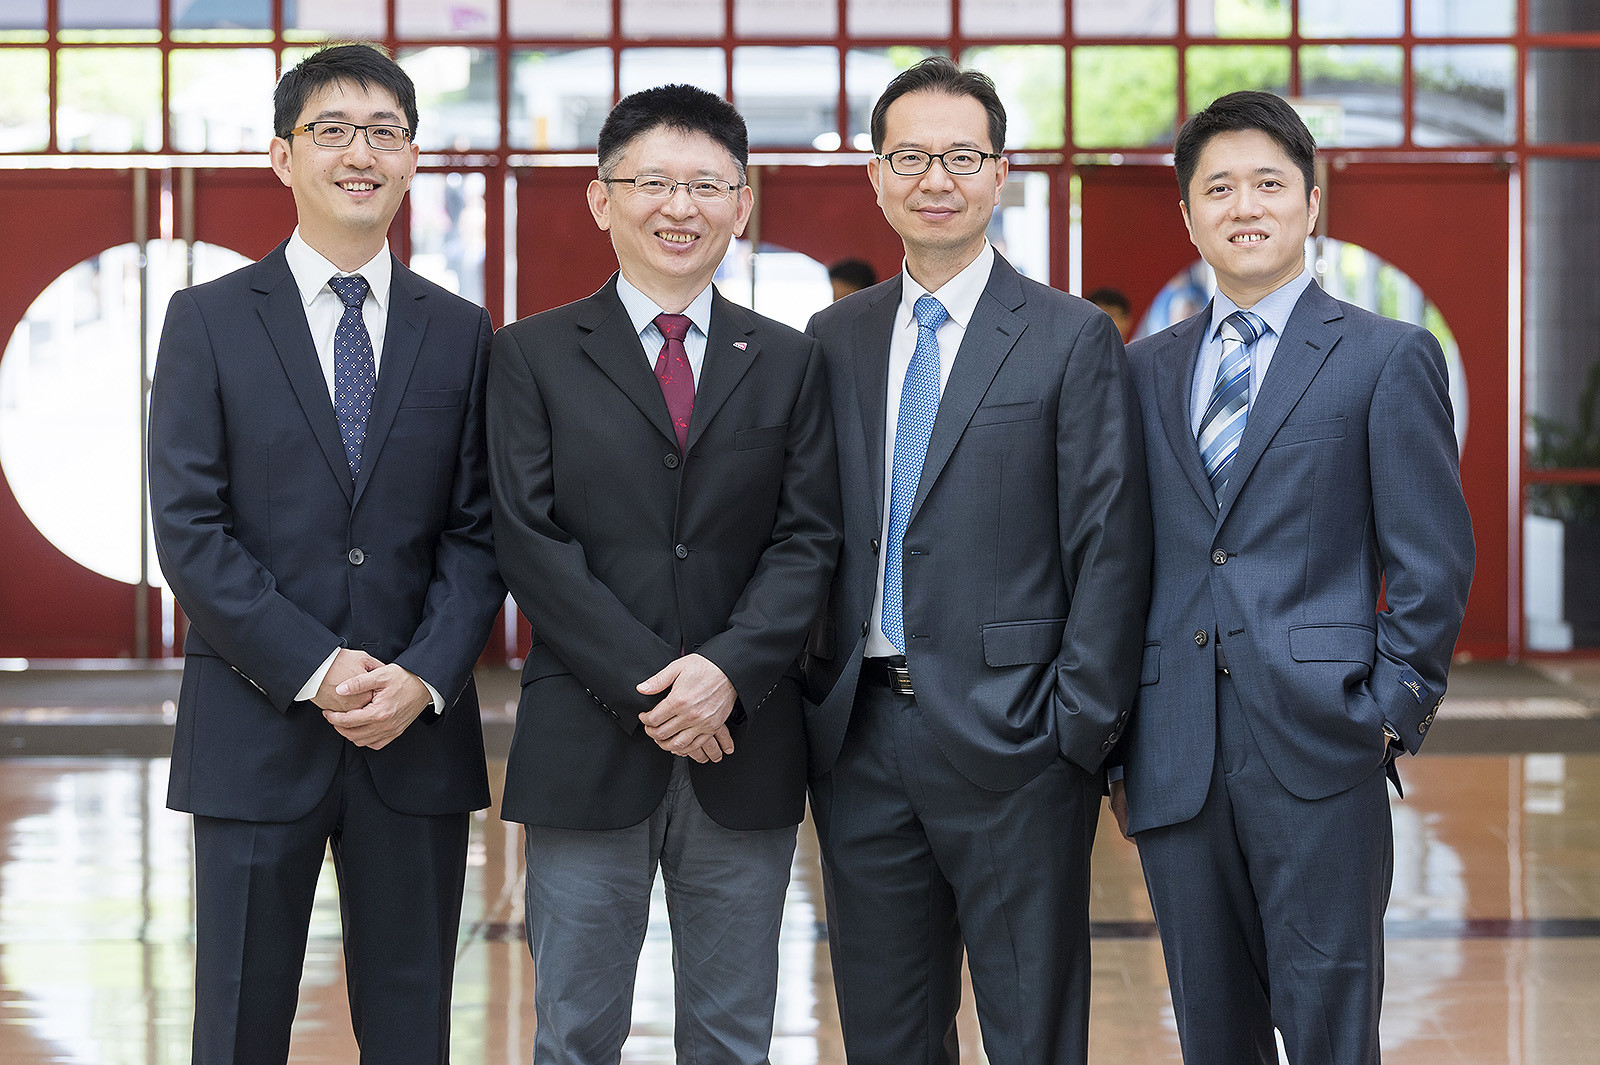 Professor Feng and Professor Kim (2nd and 3rd from left) have been awarded Outstanding Research Awards while Dr Lu (far right) and Dr Wang (far left) have been awarded Outstanding Research Awards for Junior Faculty.